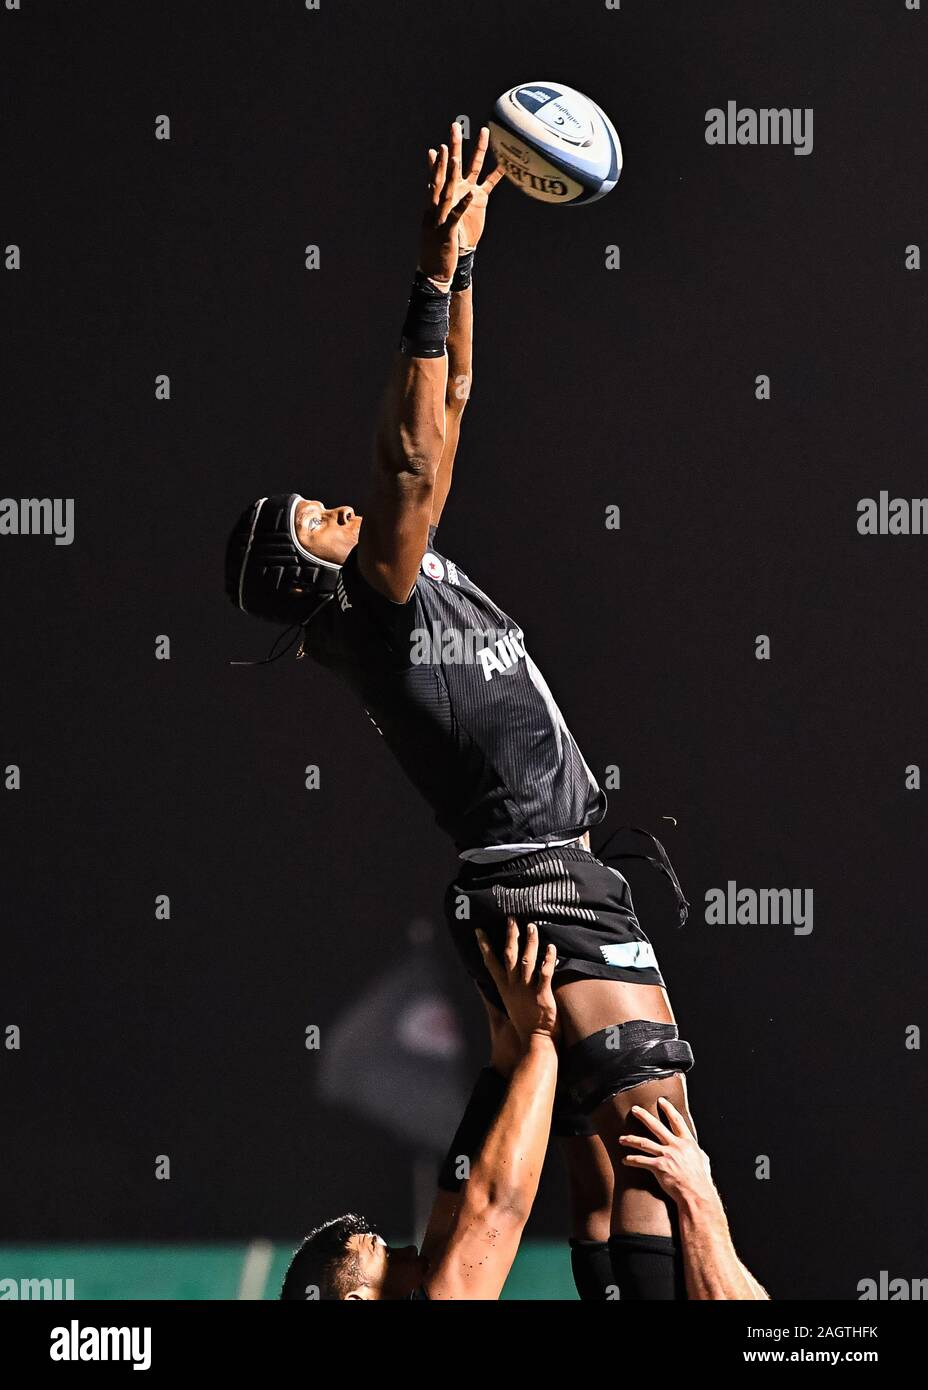 LONDON, UNITED KINGDOM. 20th, Sep 2018. Maro Itoje of Saracens caught the ball in line-out during Gallagher Premiership Rugby match between Saracens vs Bristol Bears at Allianz Park on Thursday, 20 September 2018. LONDON England .  (Editorial use only, license required for commercial use. No use in betting, games or a single club/league/player publications.) Credit: Taka G Wu/Alamy Live News Stock Photo